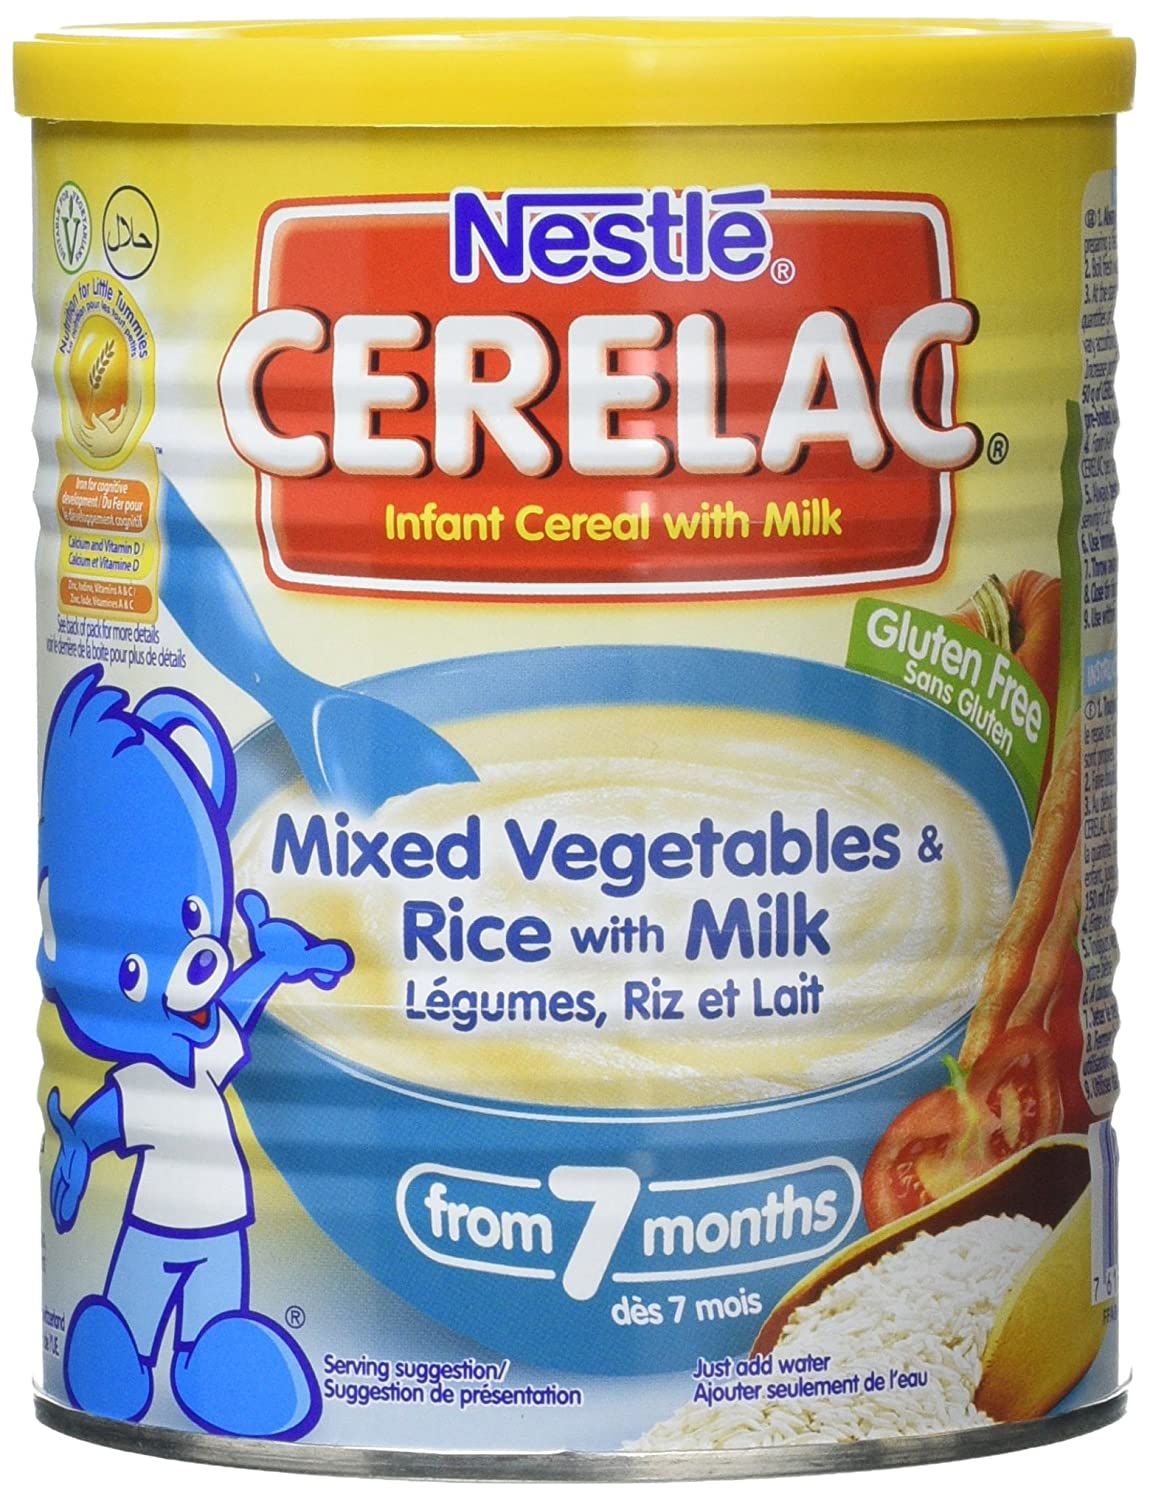 Nestle Cerelac 3 Cereals With Milk, 400 g Can Live in Morrisons